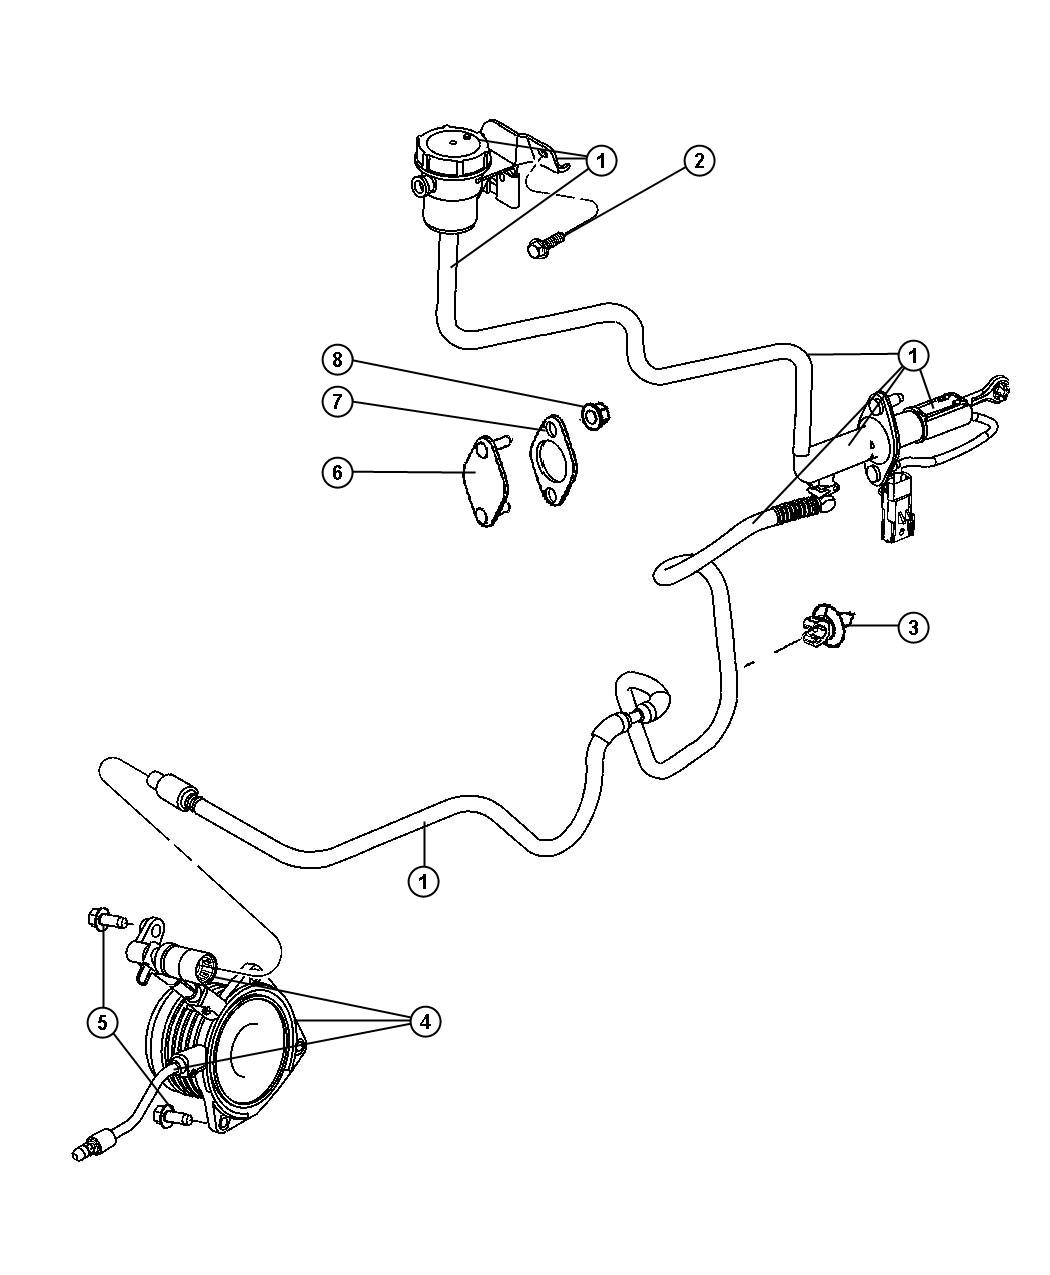 Wiring Diagram For 73 Plymouth Cuda likewise 1970 Plymouth Cuda Wiring Diagram also Mopar Transmission Linkage Diagram likewise  on 221469982588